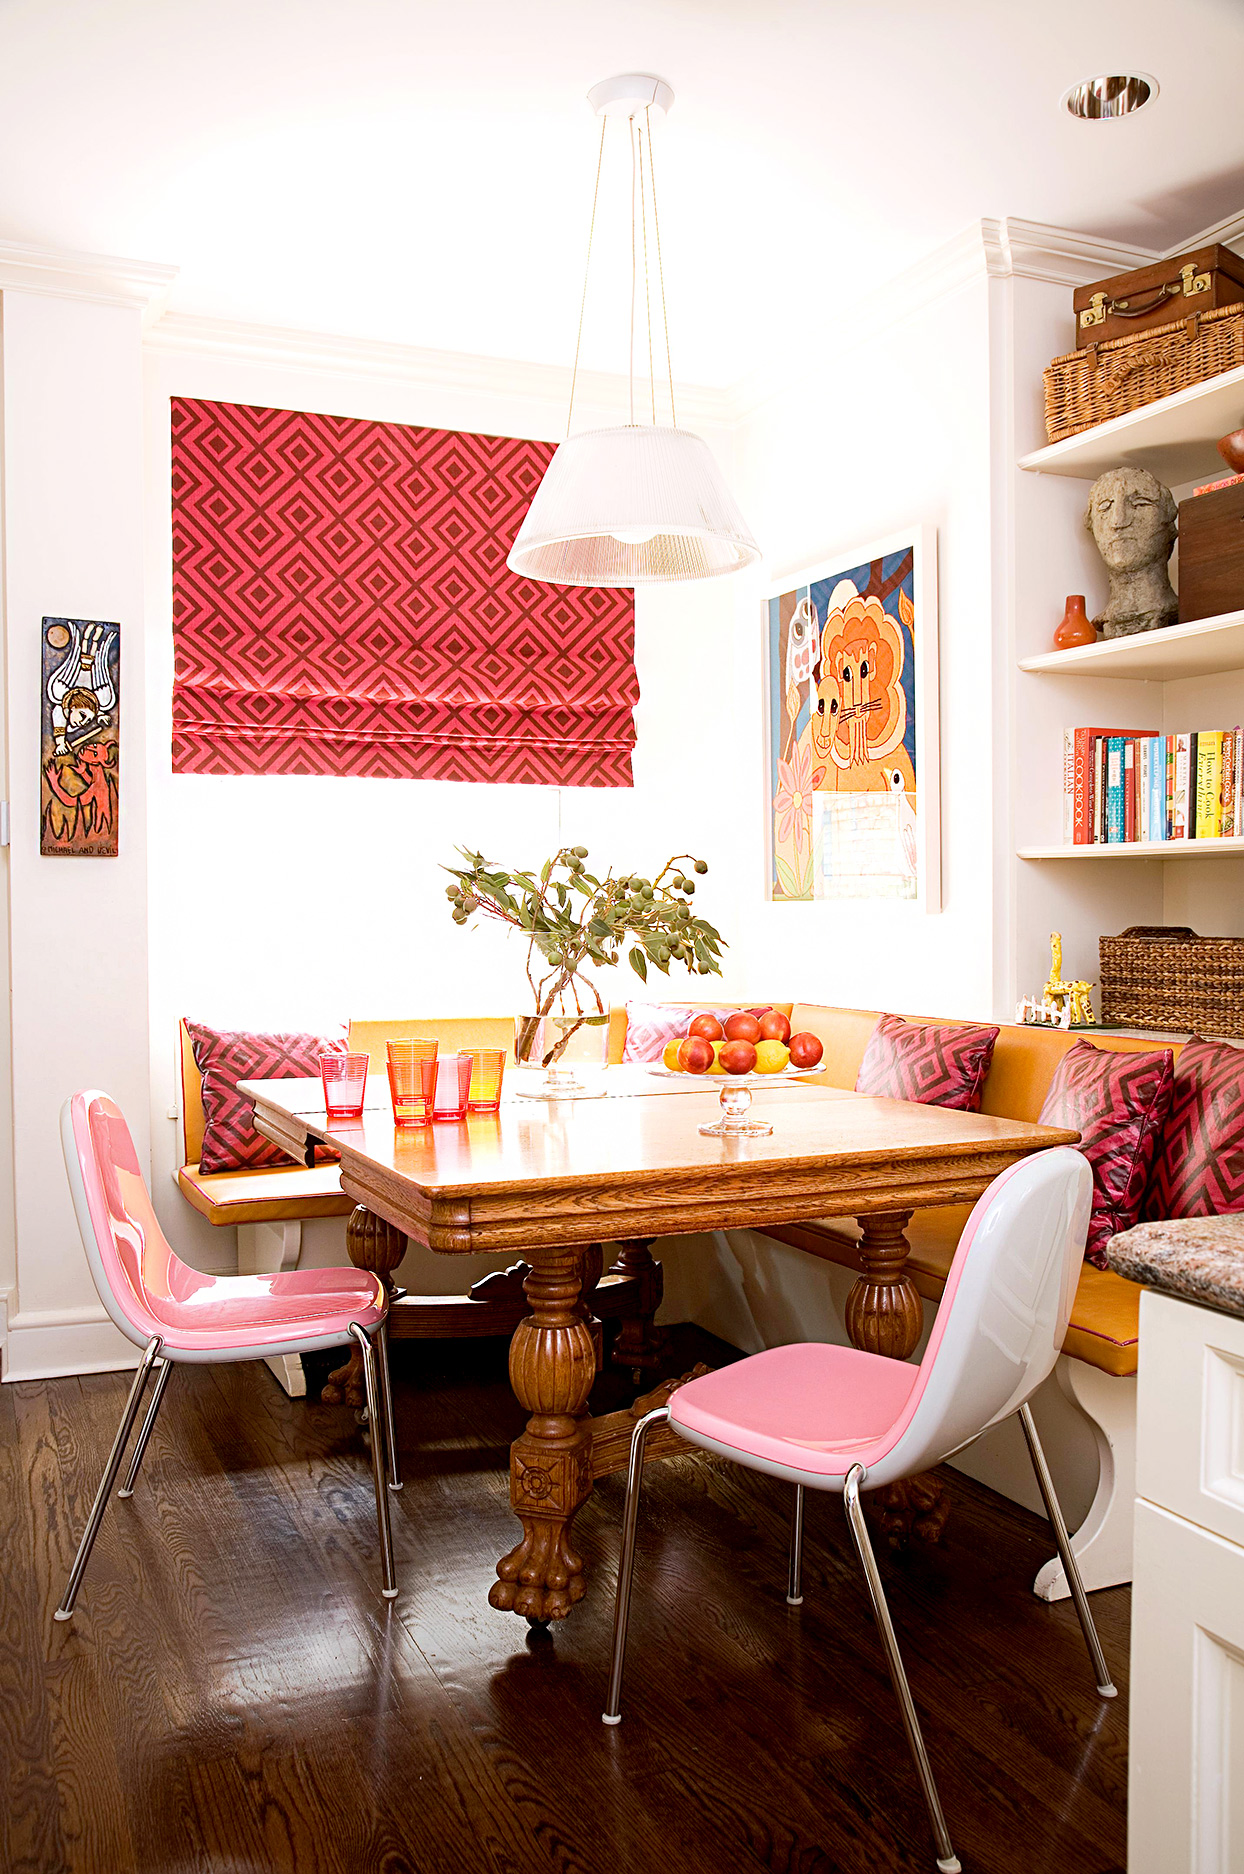 Corner dining area with bookshelf and pink and white chairs